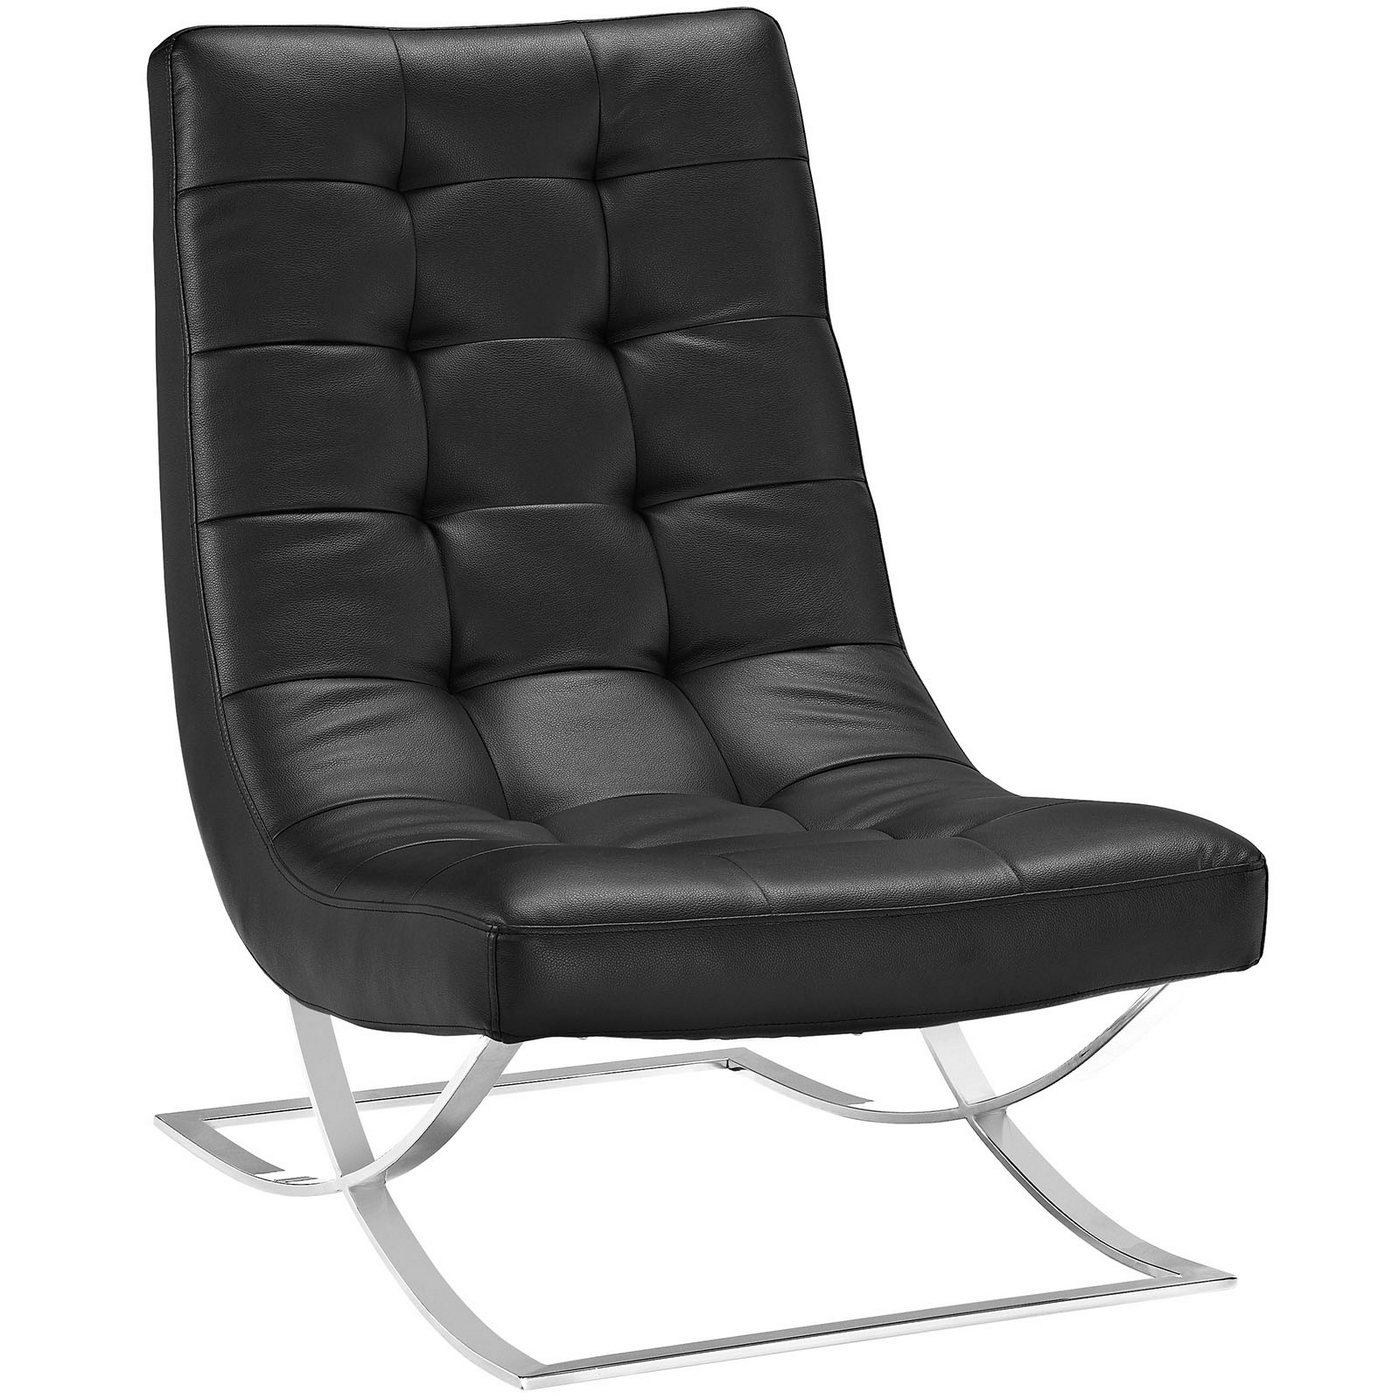 Slope Modern Button Tufted Vinyl Lounge Chair With Chrome